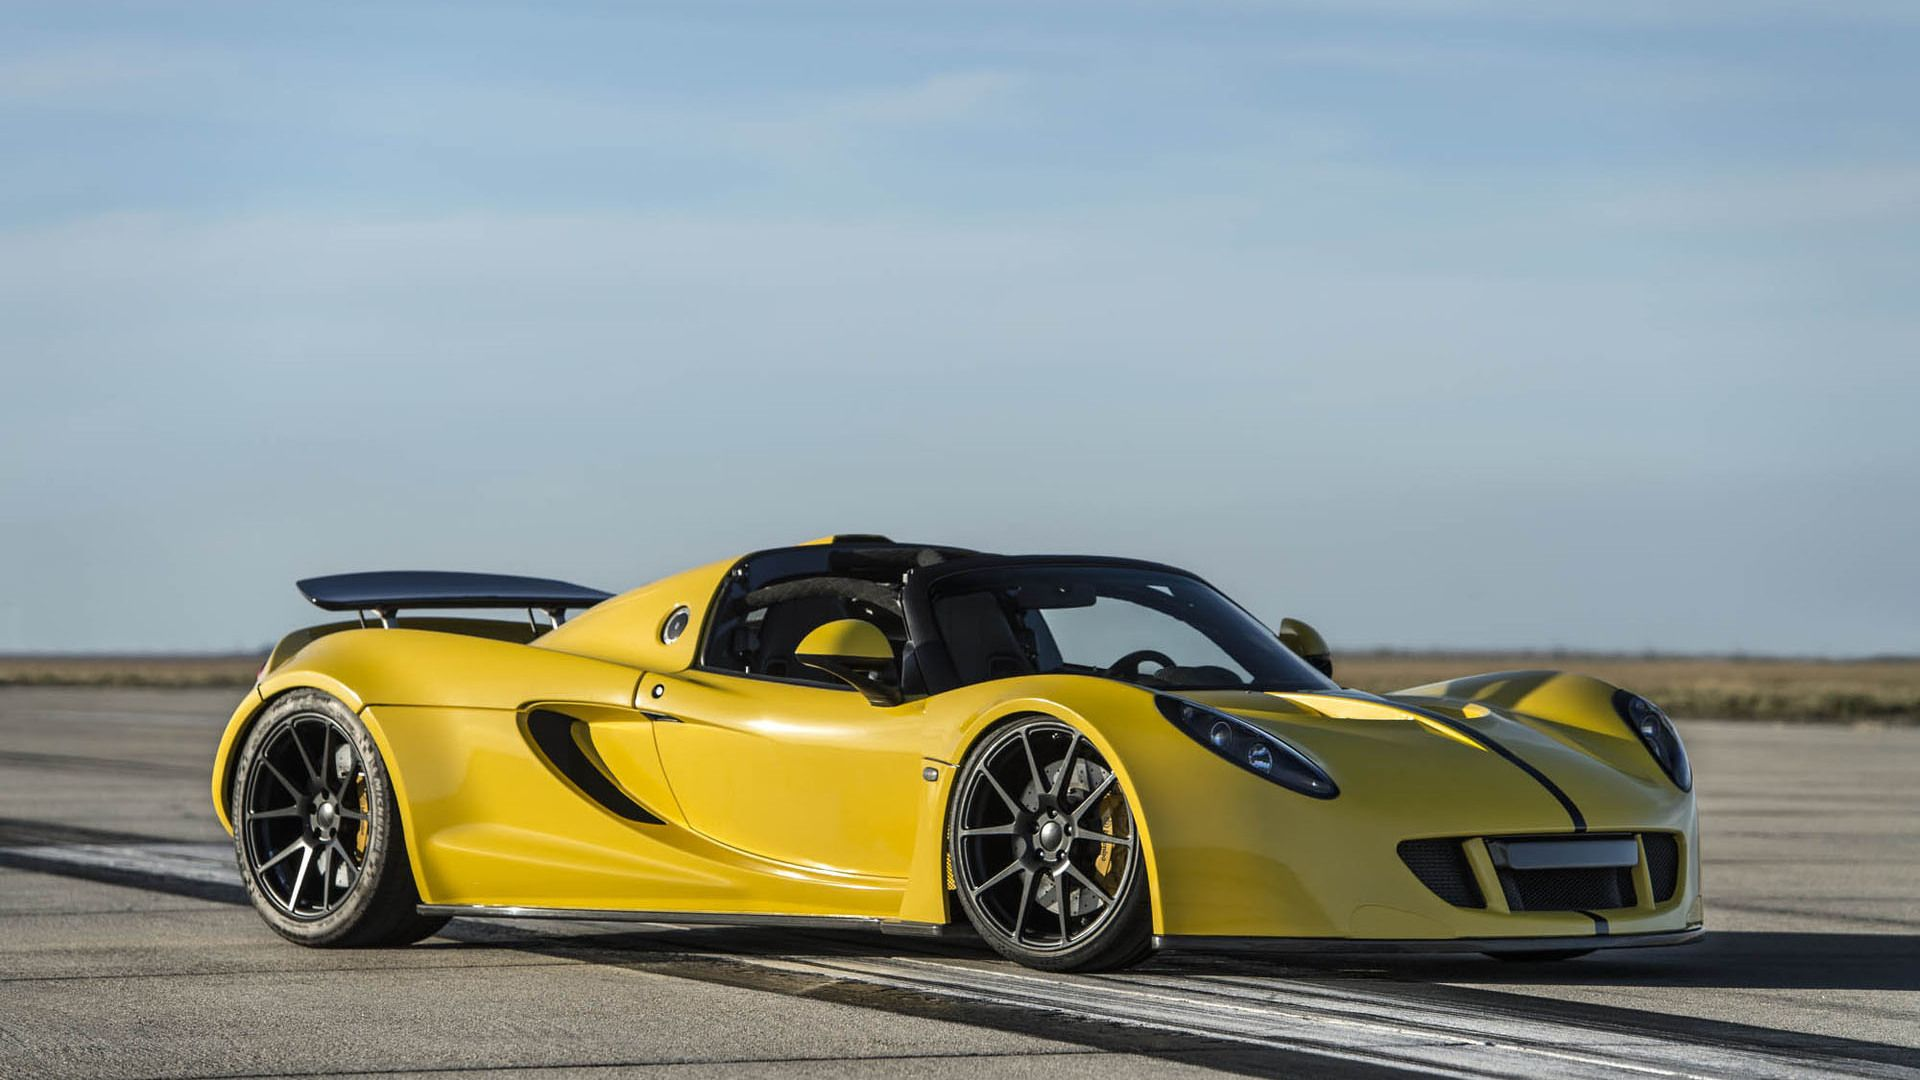 The World S Fastest Convertible Is Now The Hennessey Venom Gt Spyder Hennessey Venom Gt Hennessey Classic Cars Muscle